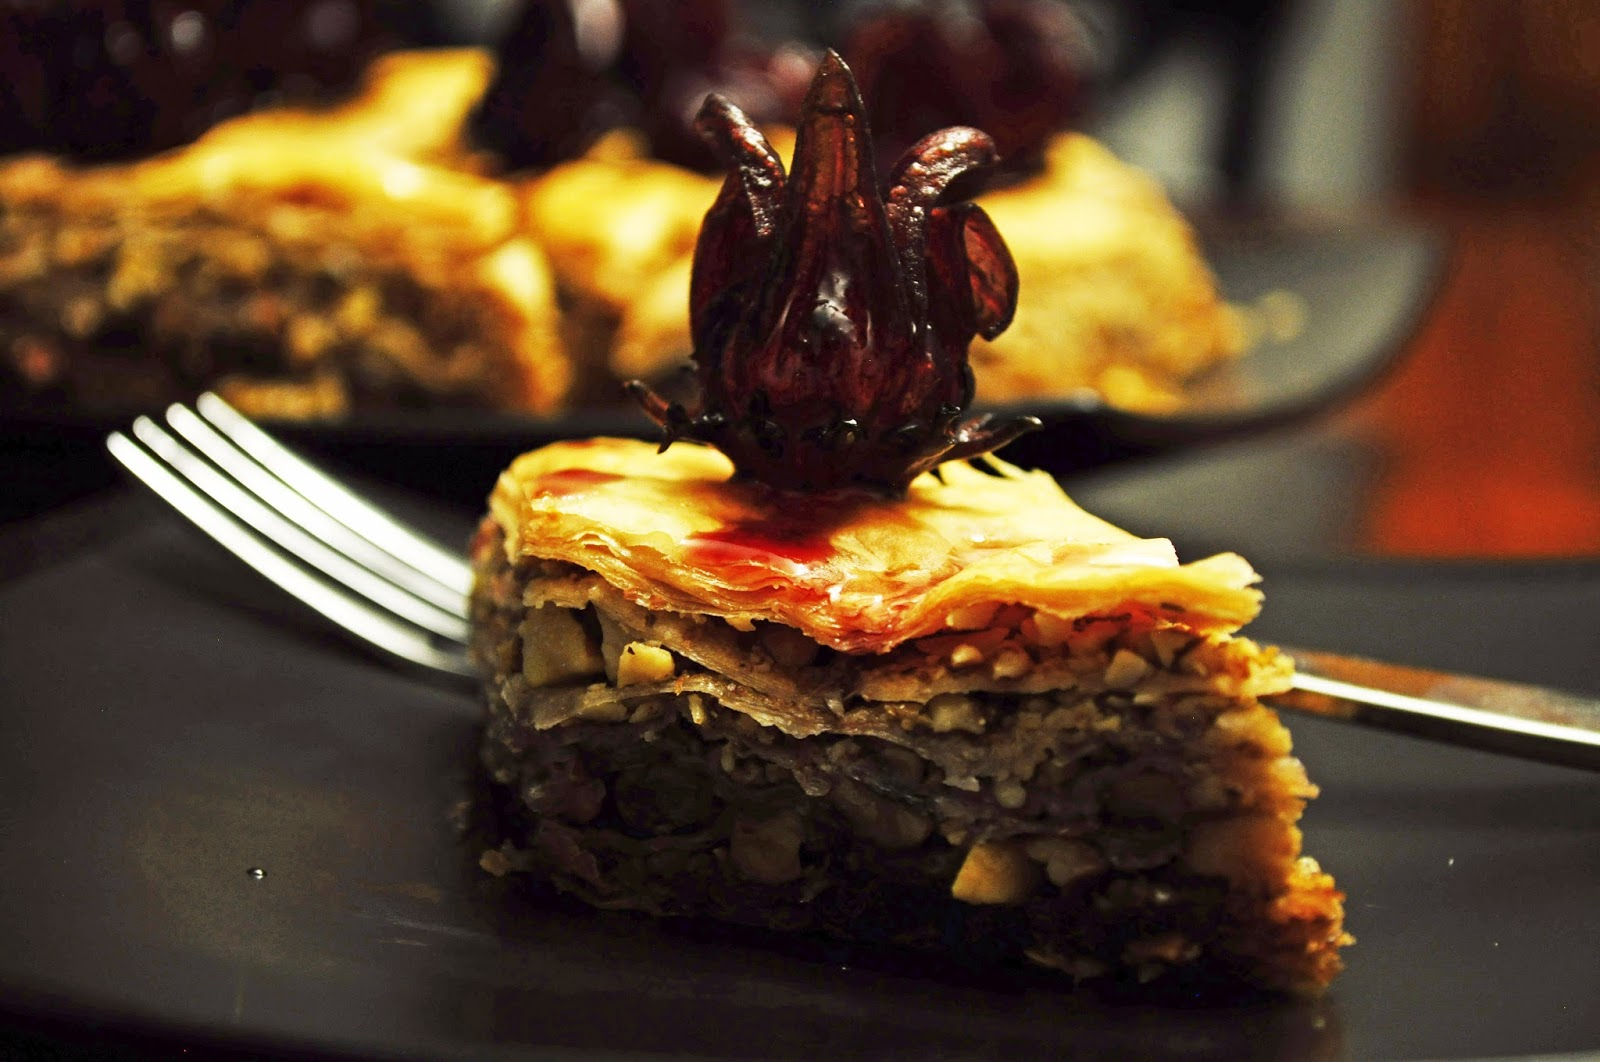 37 cooks wild hibiscus baklava the wild hibiscus flowers in syrup are a show stopper and tasty too this is a basic baklava recipe with the addition of wild hibiscus syrup and garnished izmirmasajfo